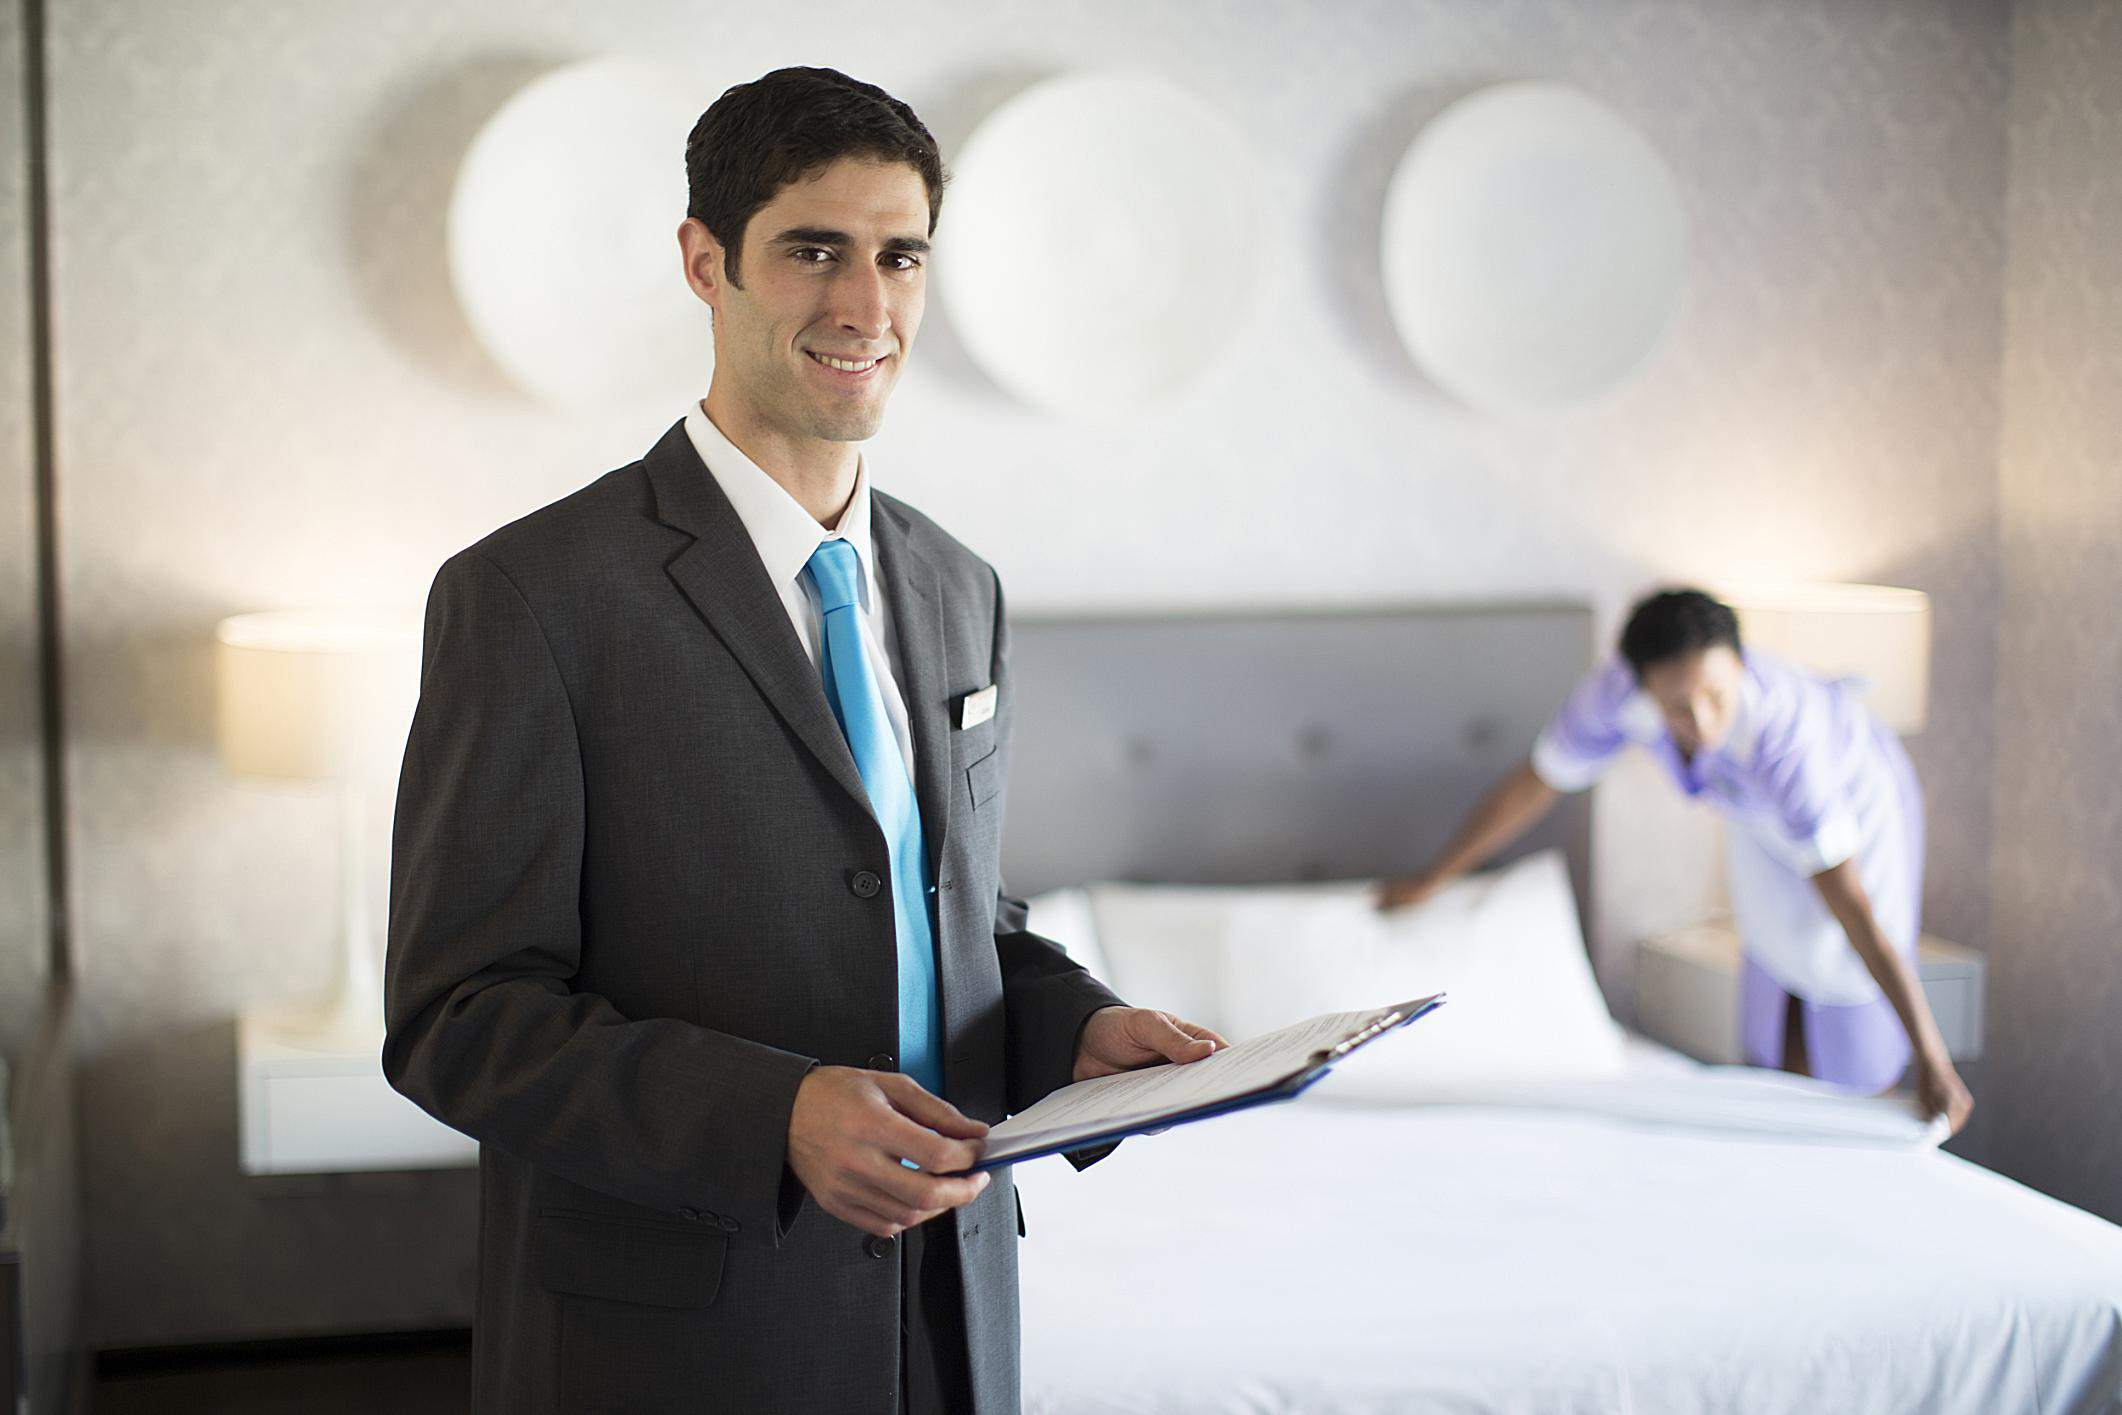 Concierge overseeing the cleaning of a hotel room